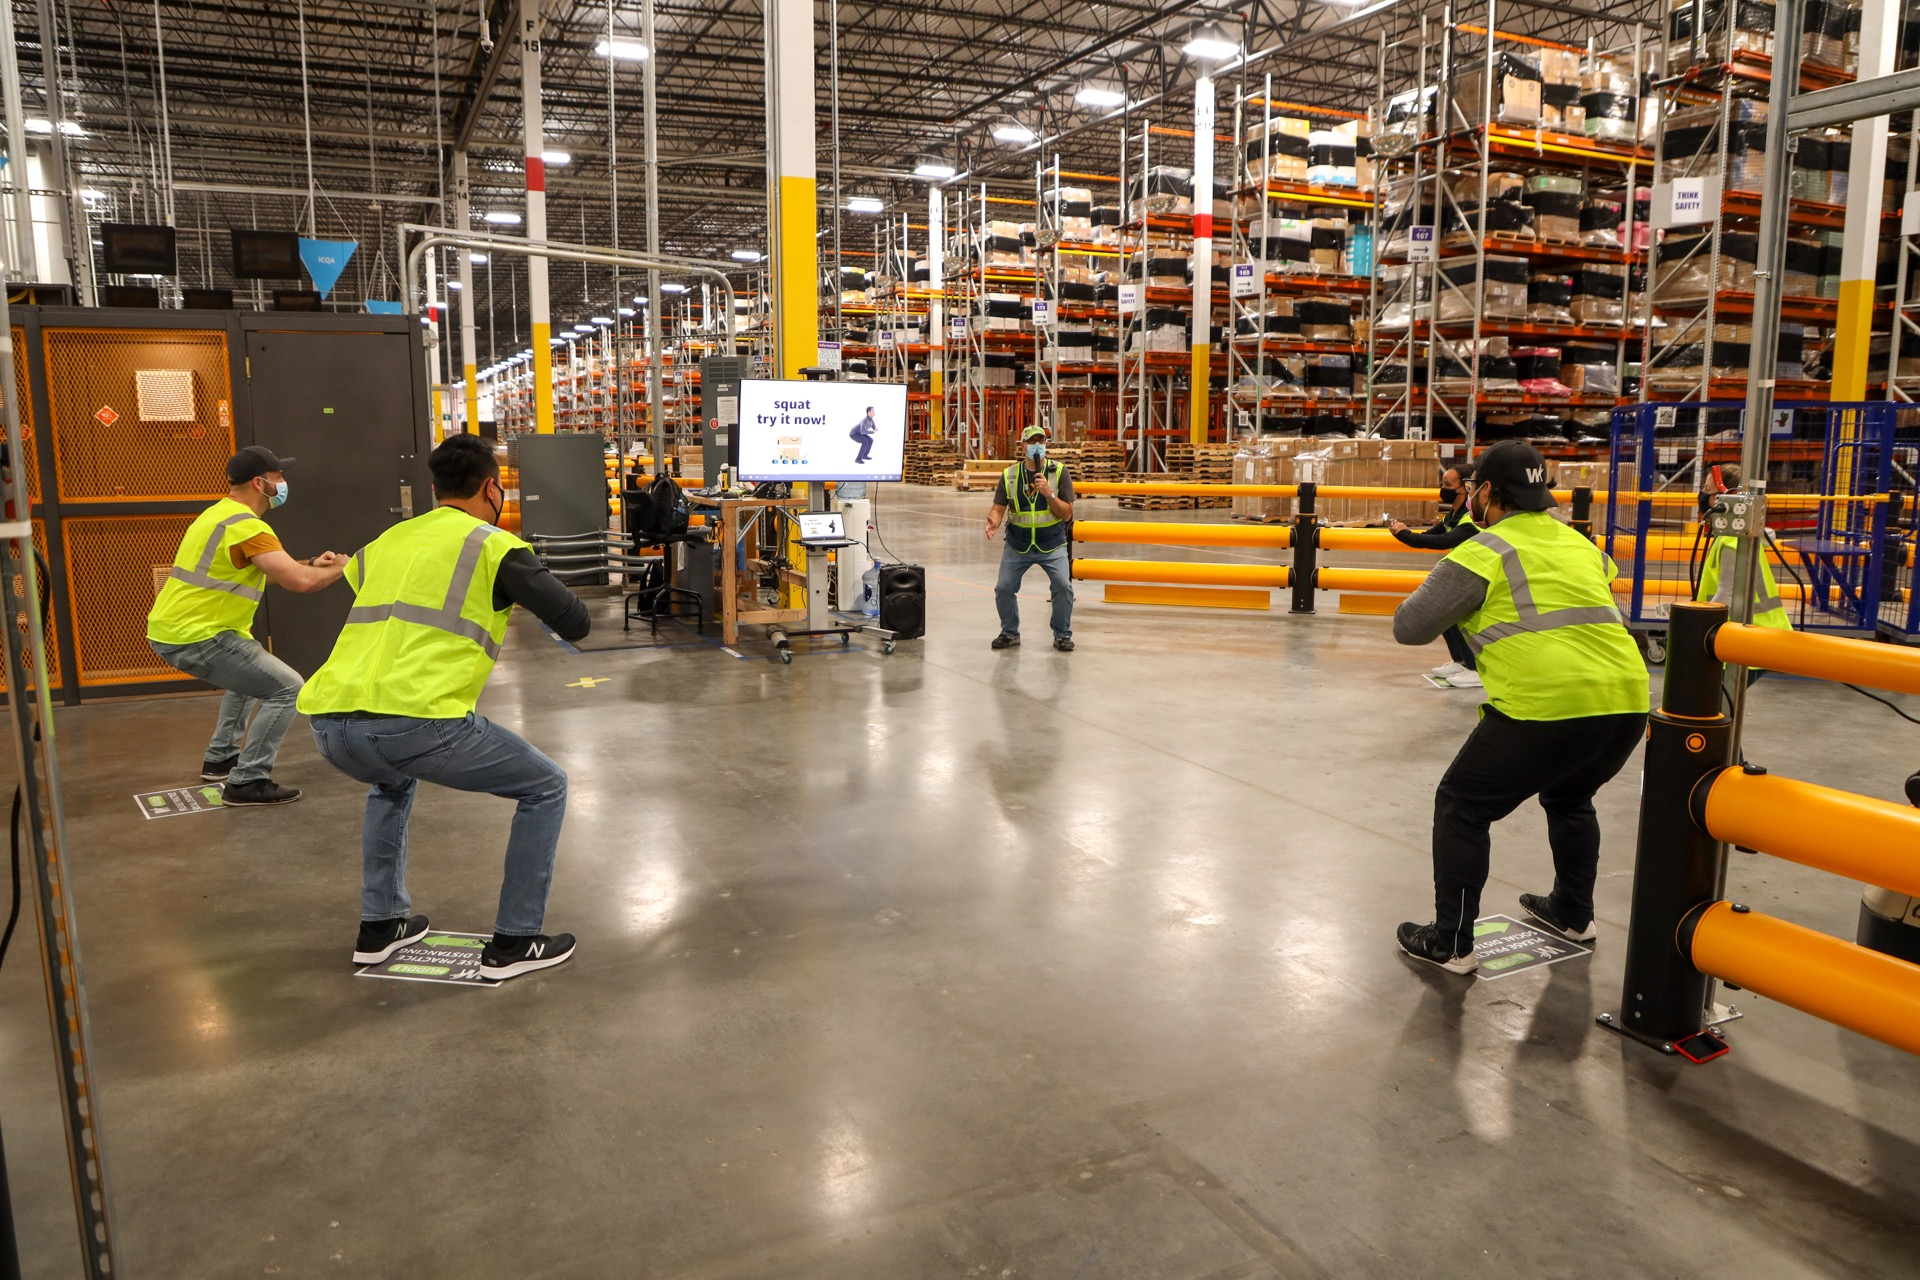 Leaked document: Amazon warehouse work is like being a galley slave